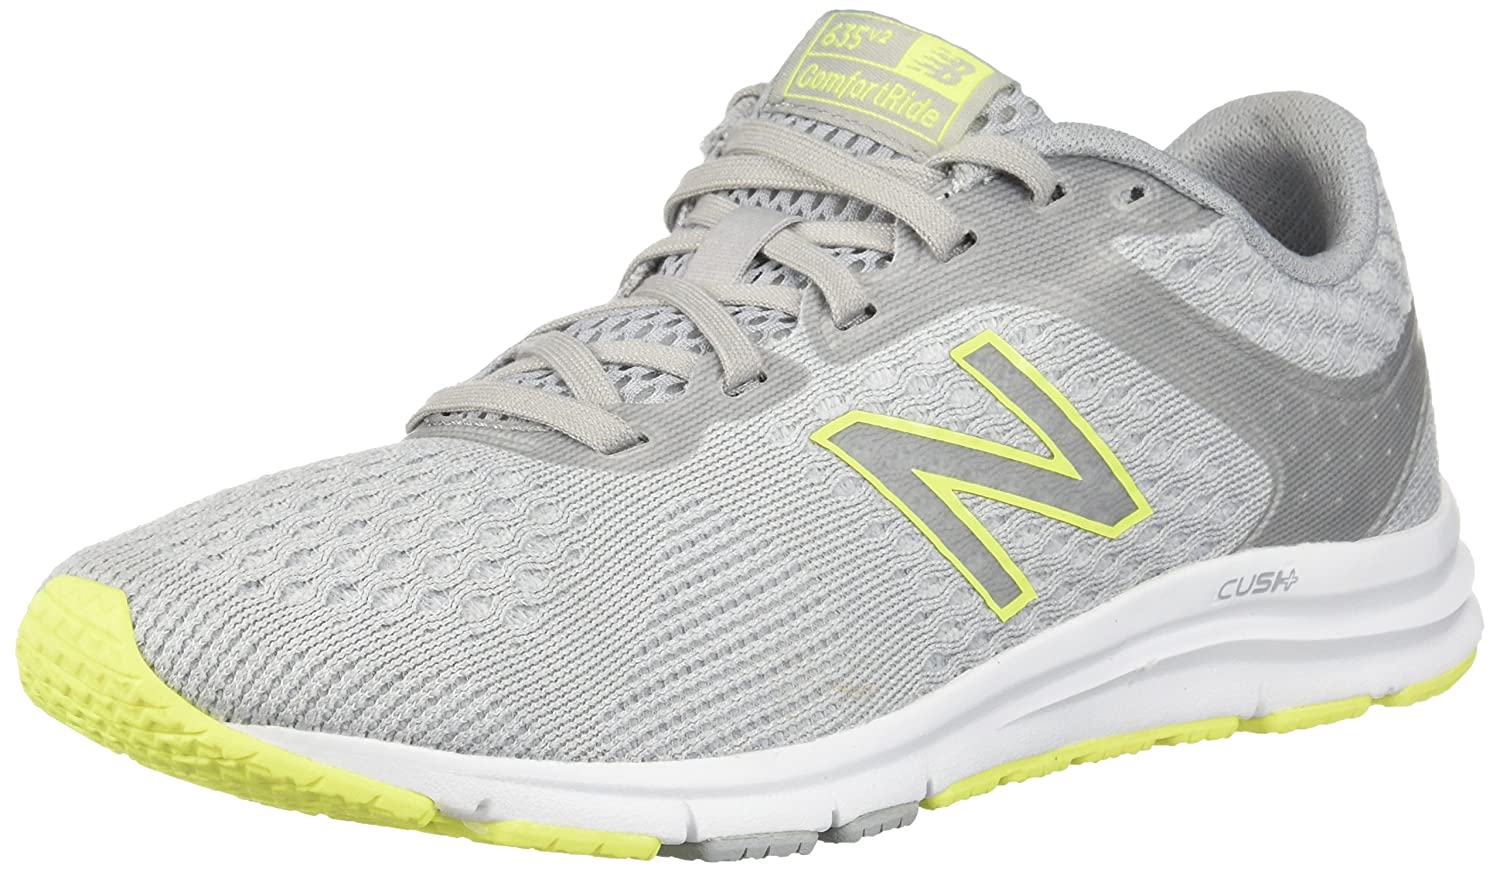 New Balance Women's 635v2 Cushioning Running Shoe B06XRTS7D1 8 B(M) US|Silver/Yellow